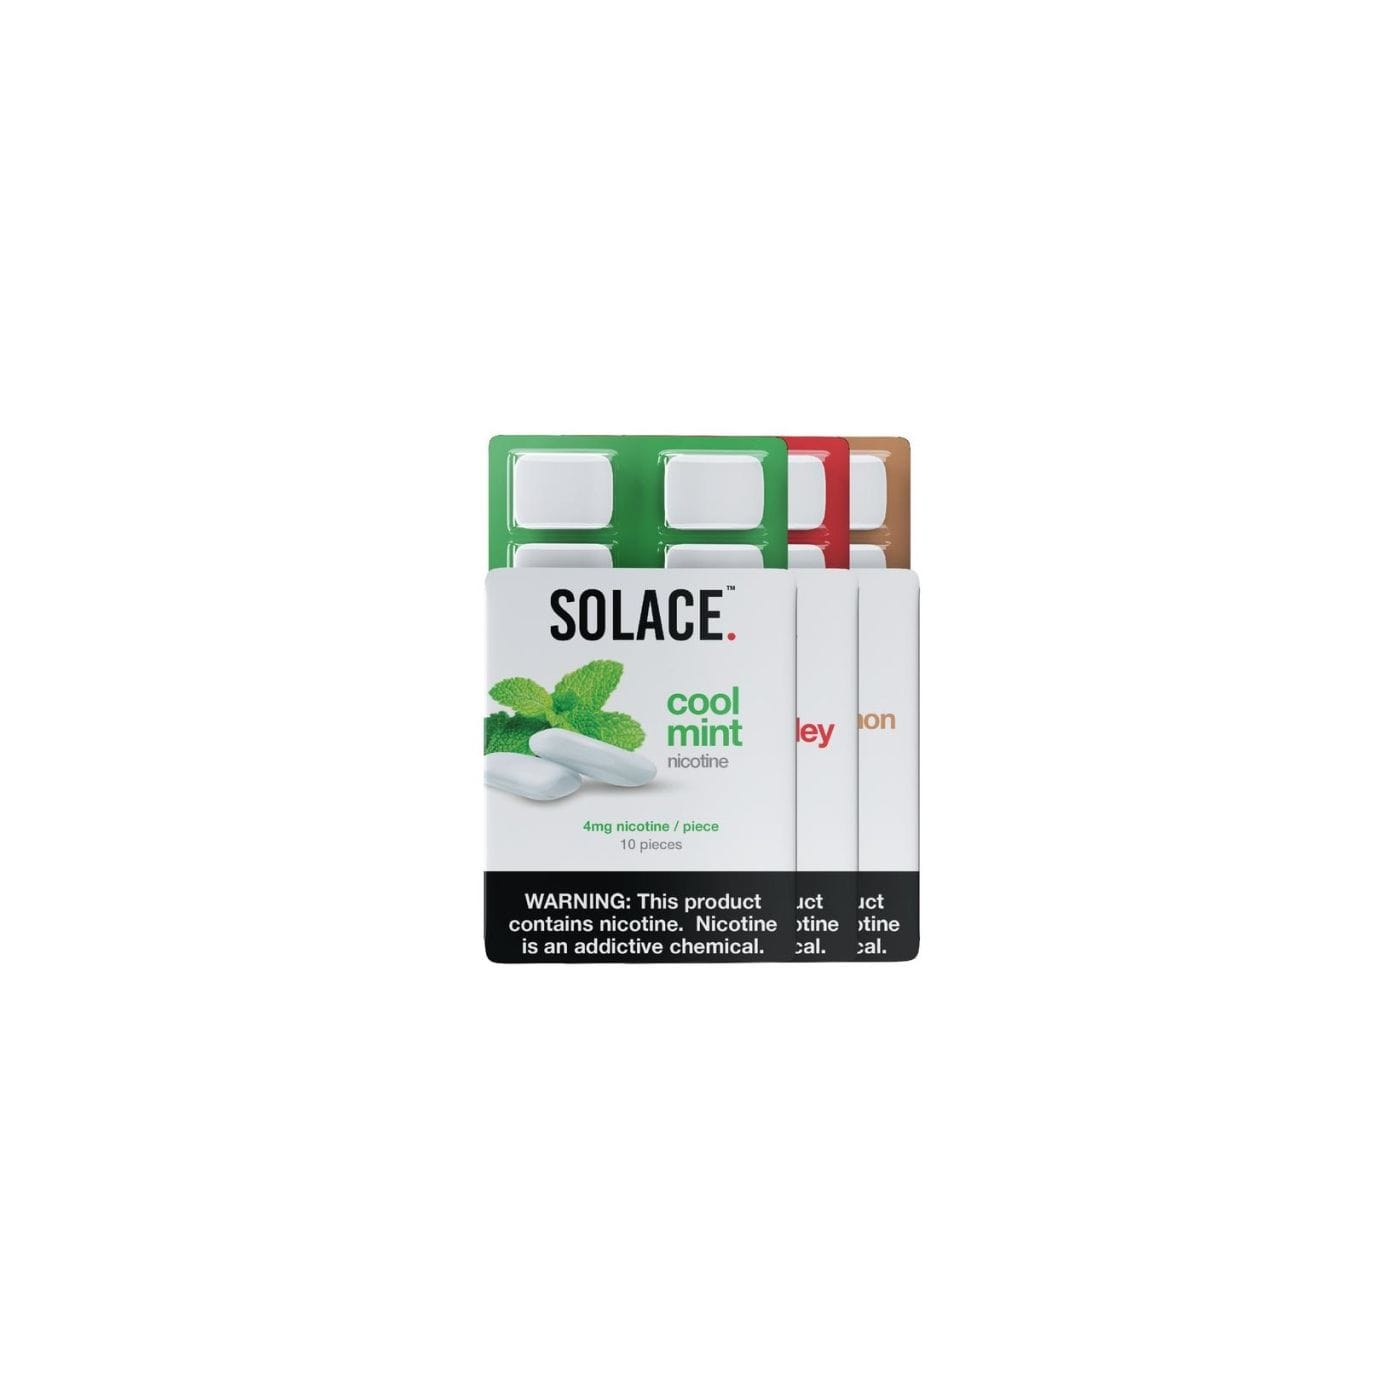 Solace Chew Mixed Carton - 30 Pack